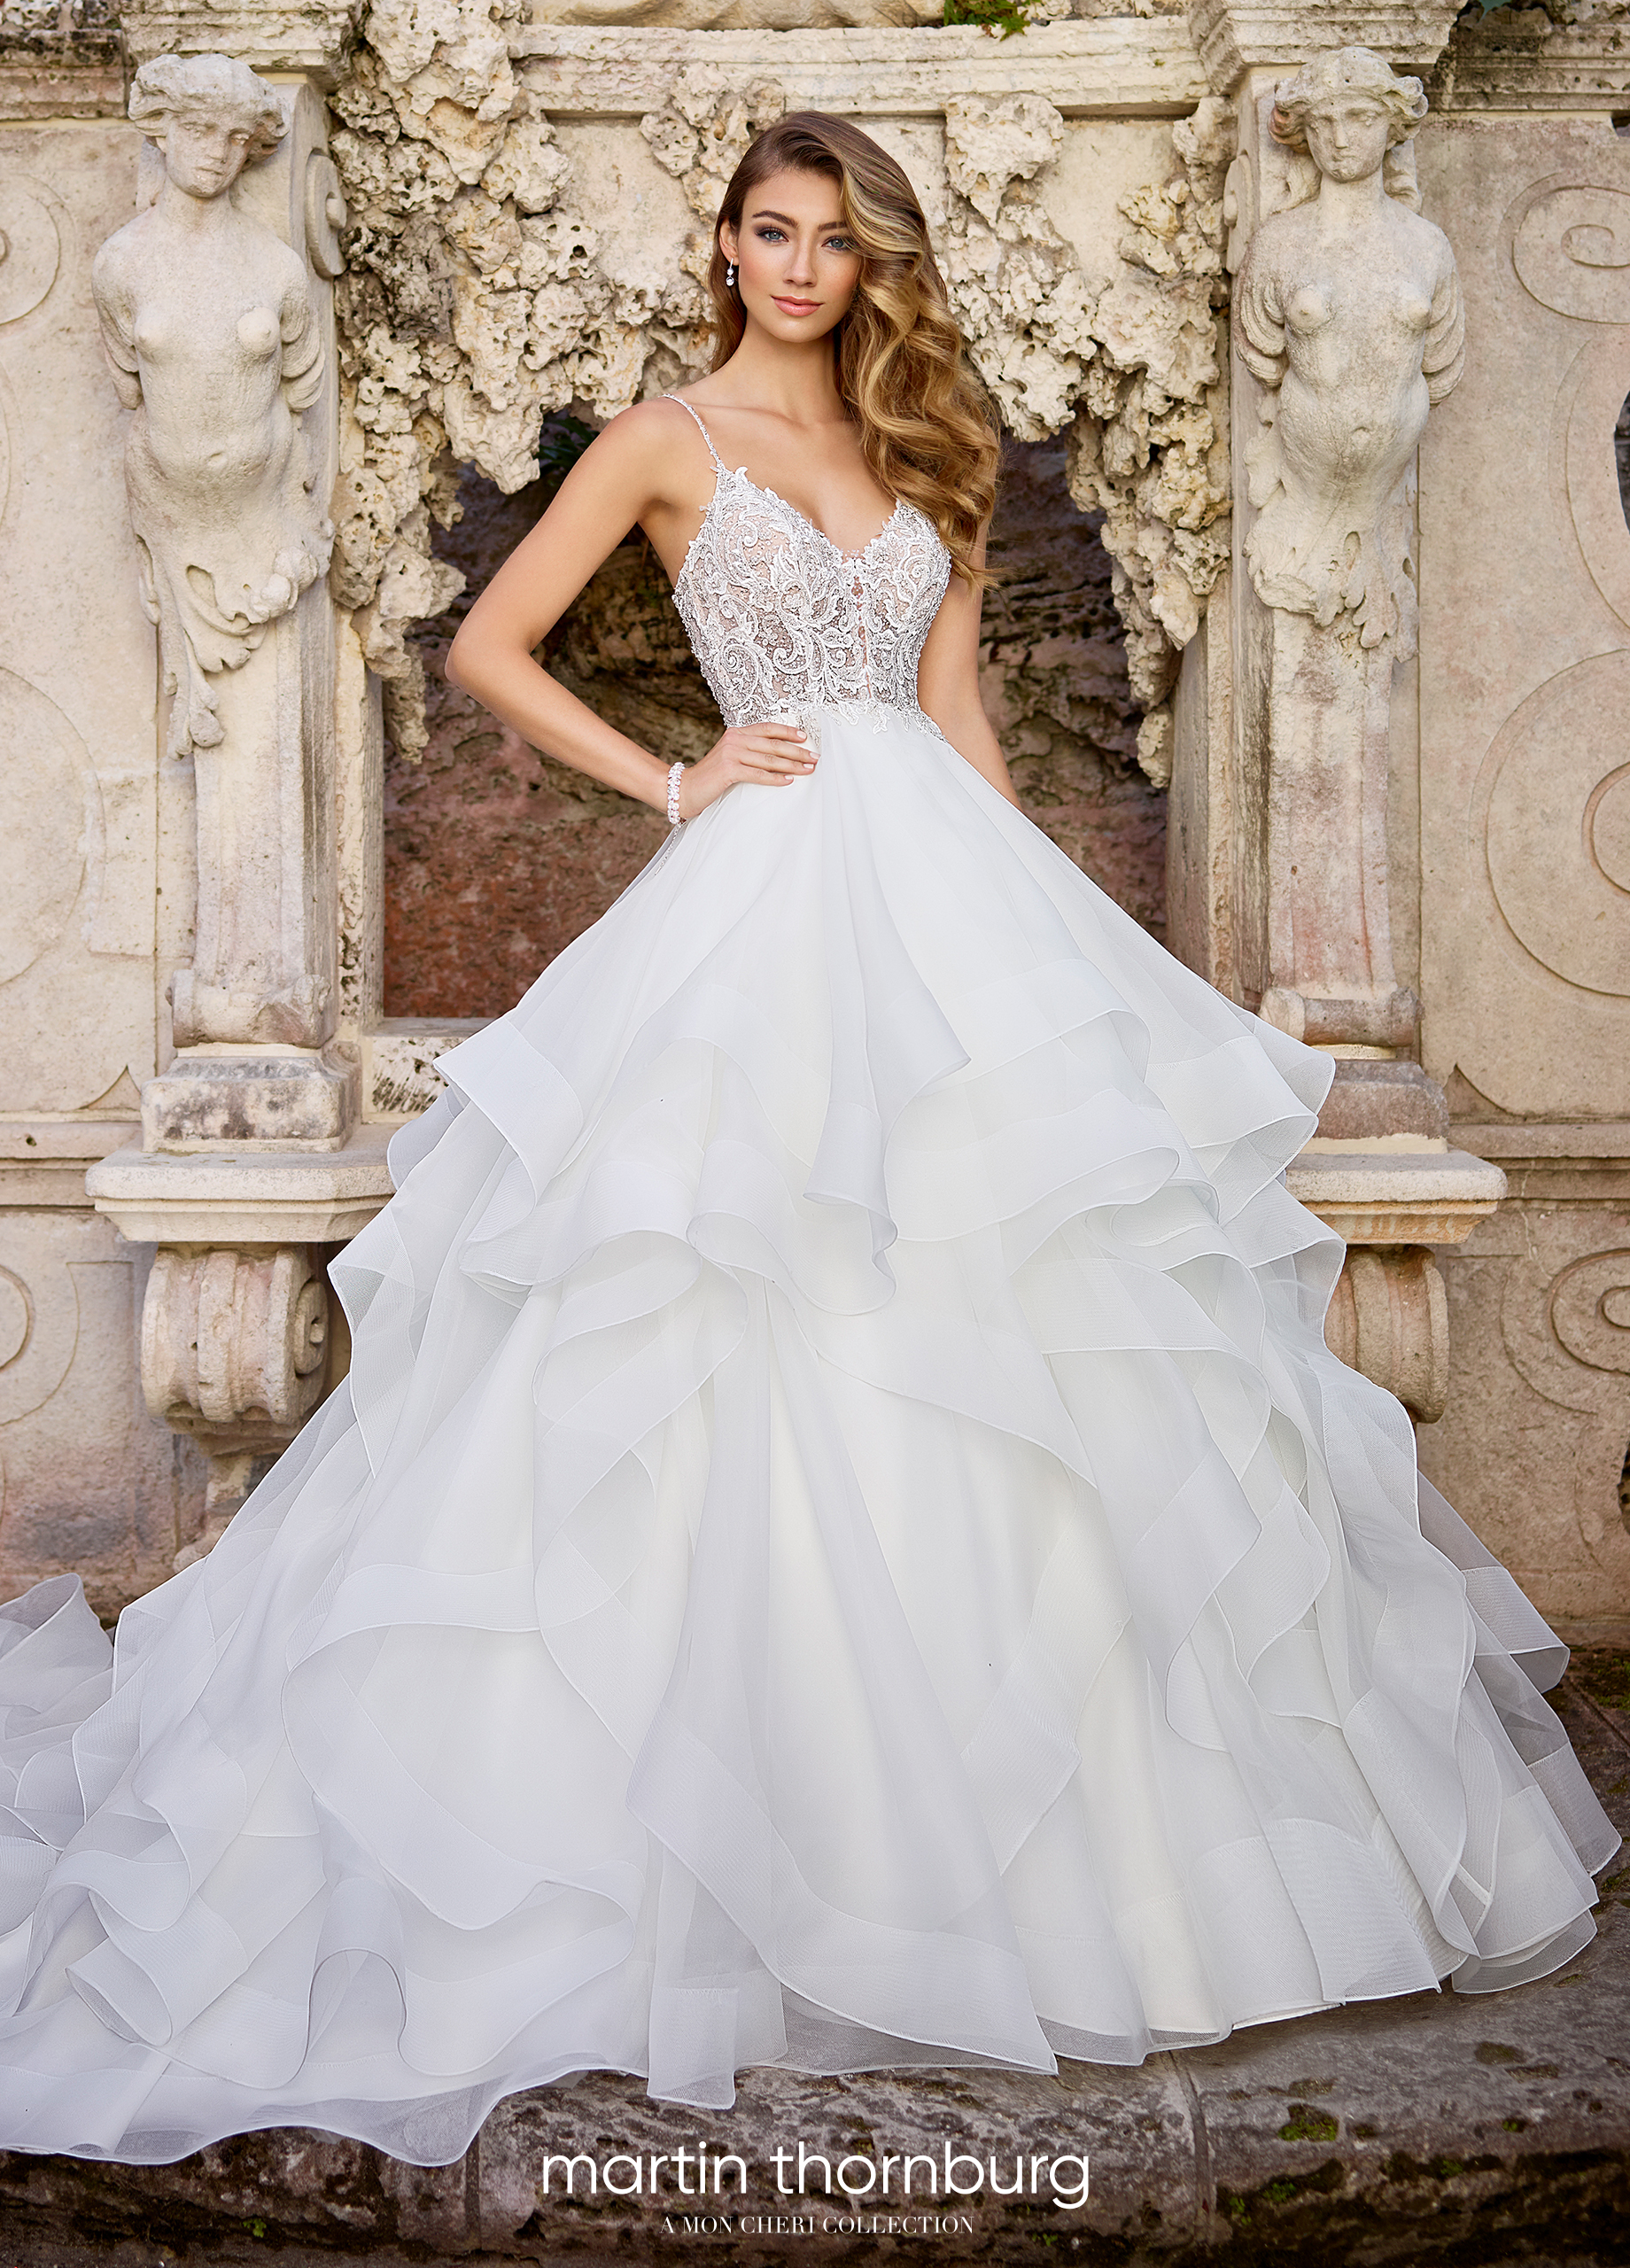 Unique Bridal Dresses Martin Thornburg A Mon Cheri Collection 2020